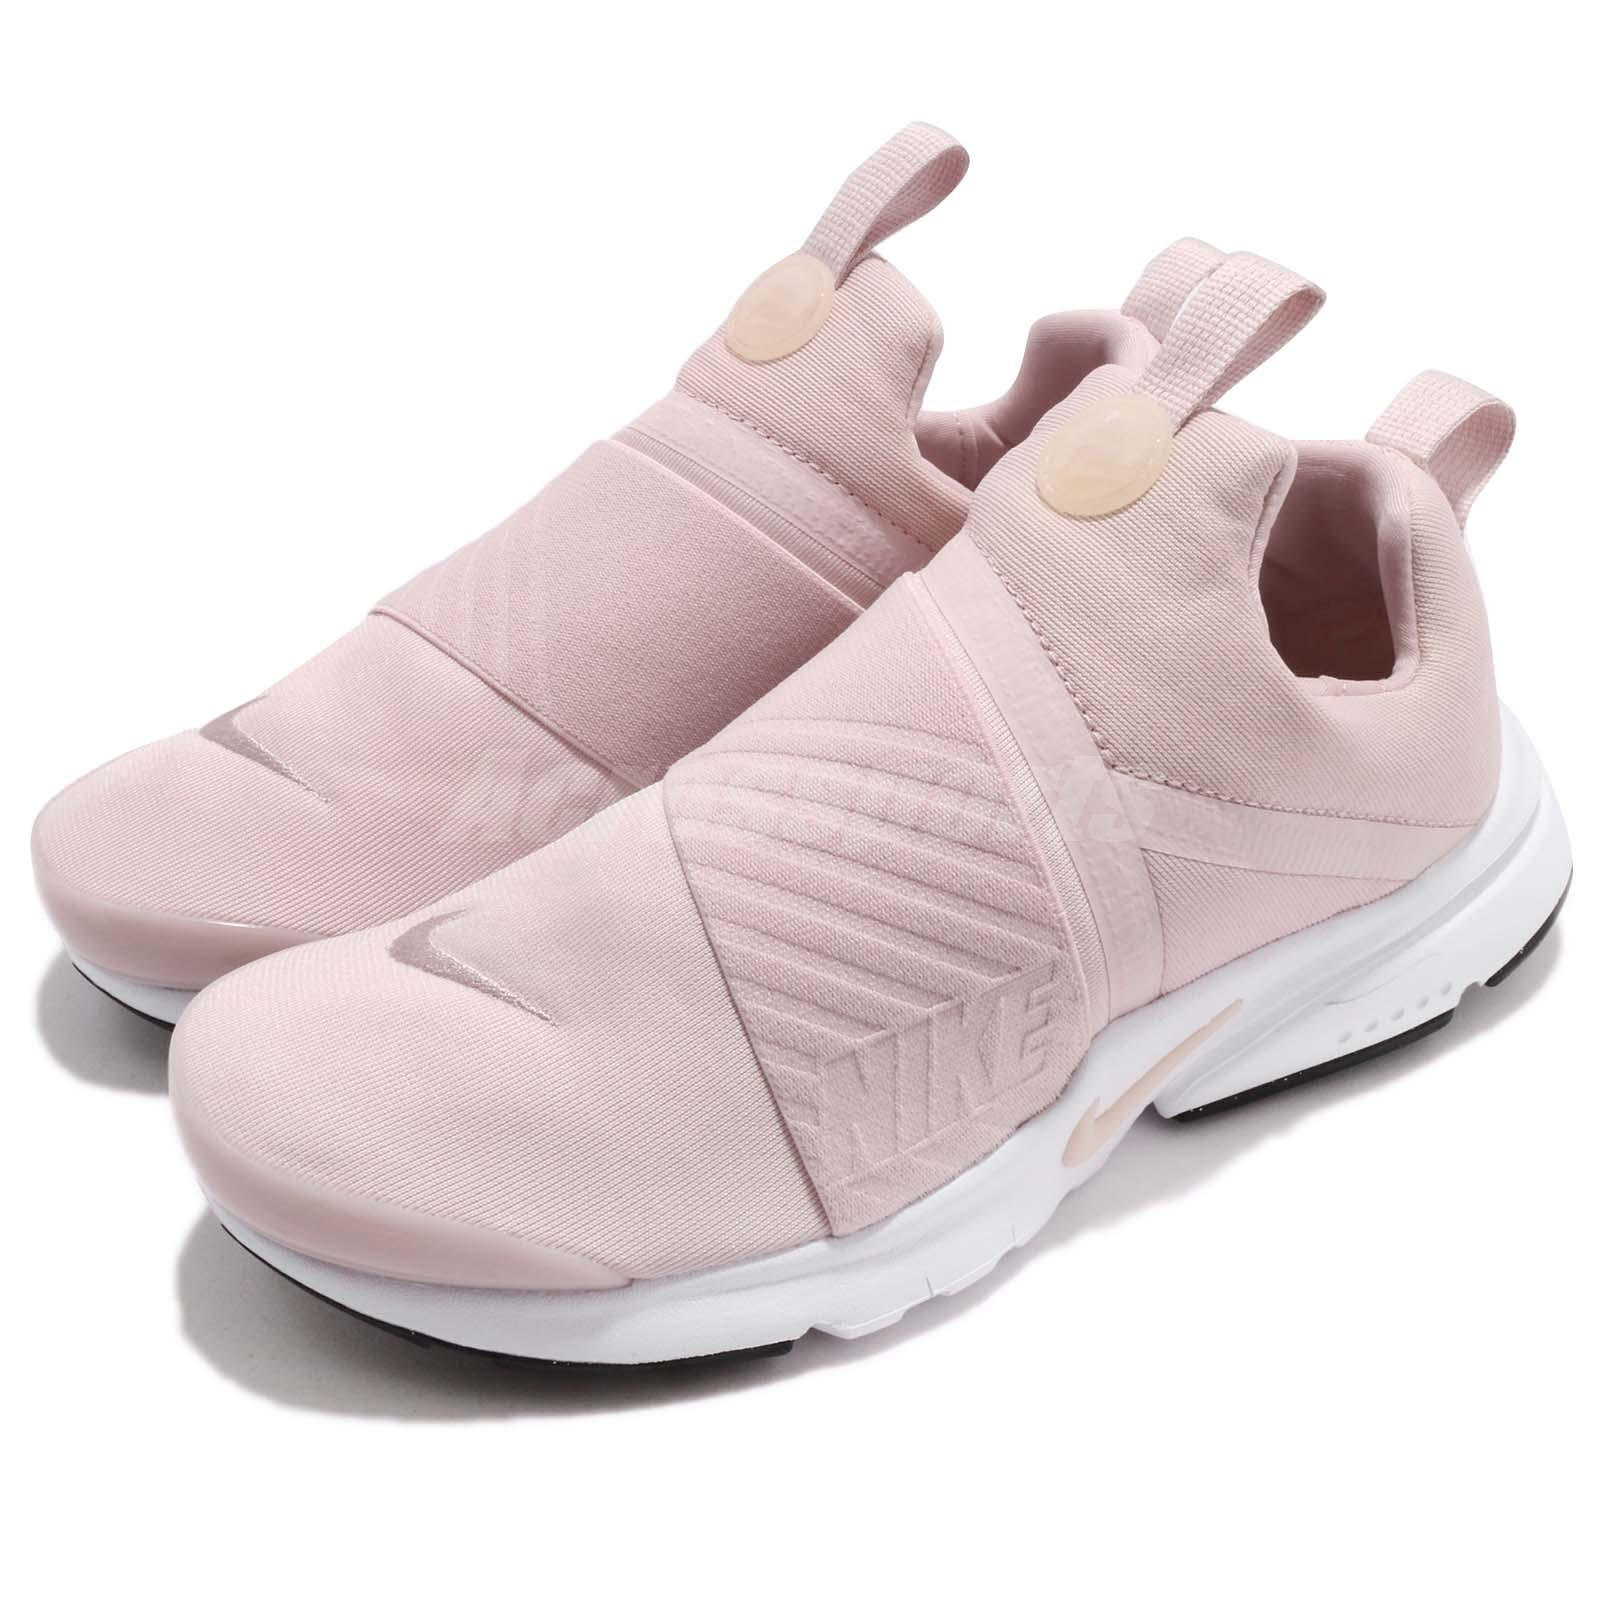 low priced 7cb7b ef182 Details about Nike Presto Extreme GS Barely Rose Pink White Kid Women  Running Shoes 870022-601